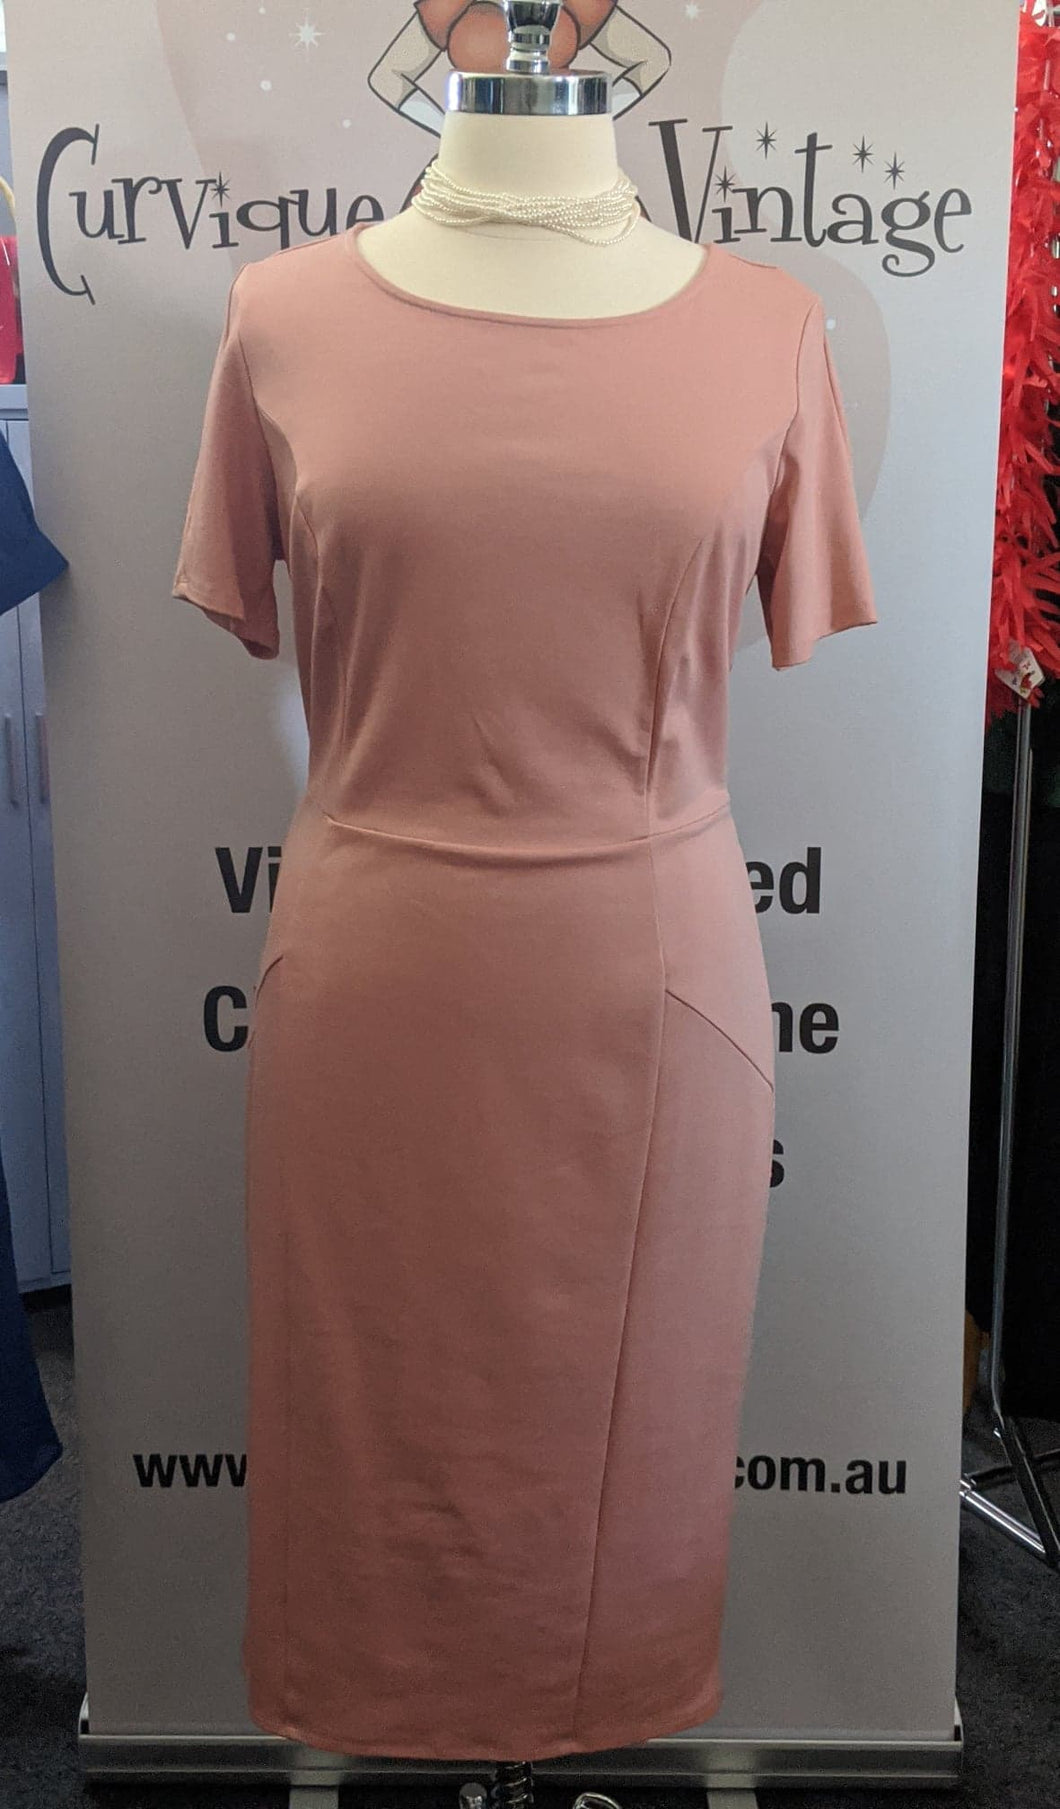 Pink Short Sleeve Mod Wiggle Dress - Size 3XL Only - Curvique Vintage